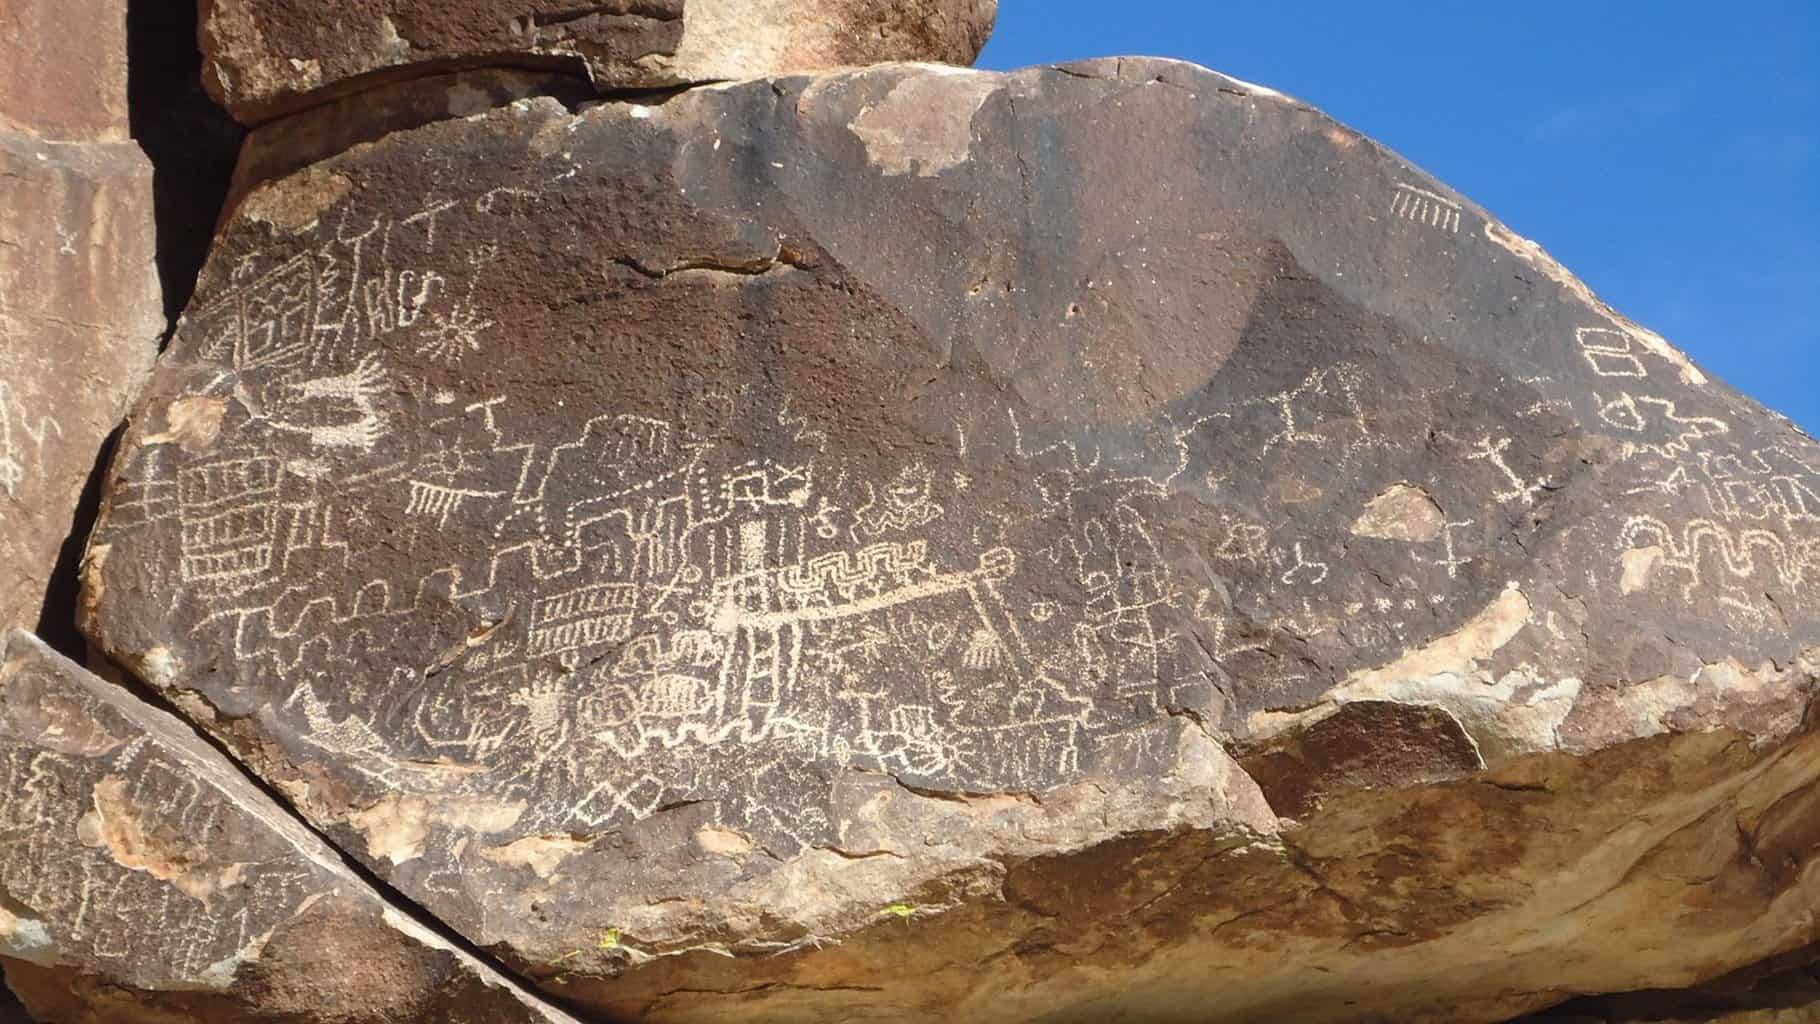 Grapevine Canyon petroglyphs, Nevada.